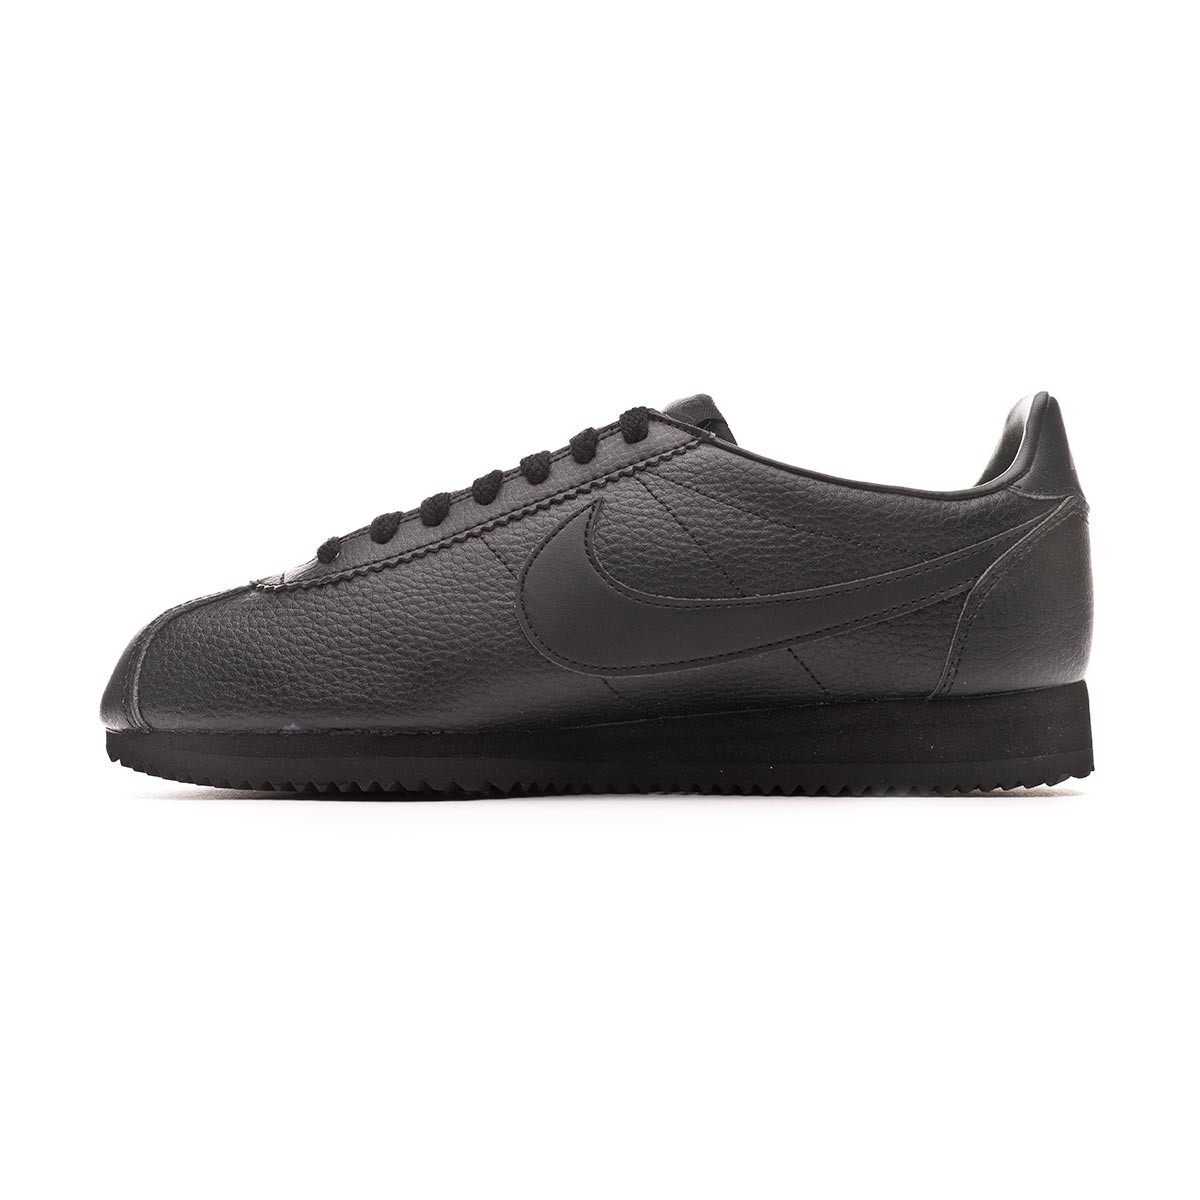 Trainers Nike Classic Cortez Leather 2019 Black-Anthracite - Football store  Fútbol Emotion a2f674cac73a8